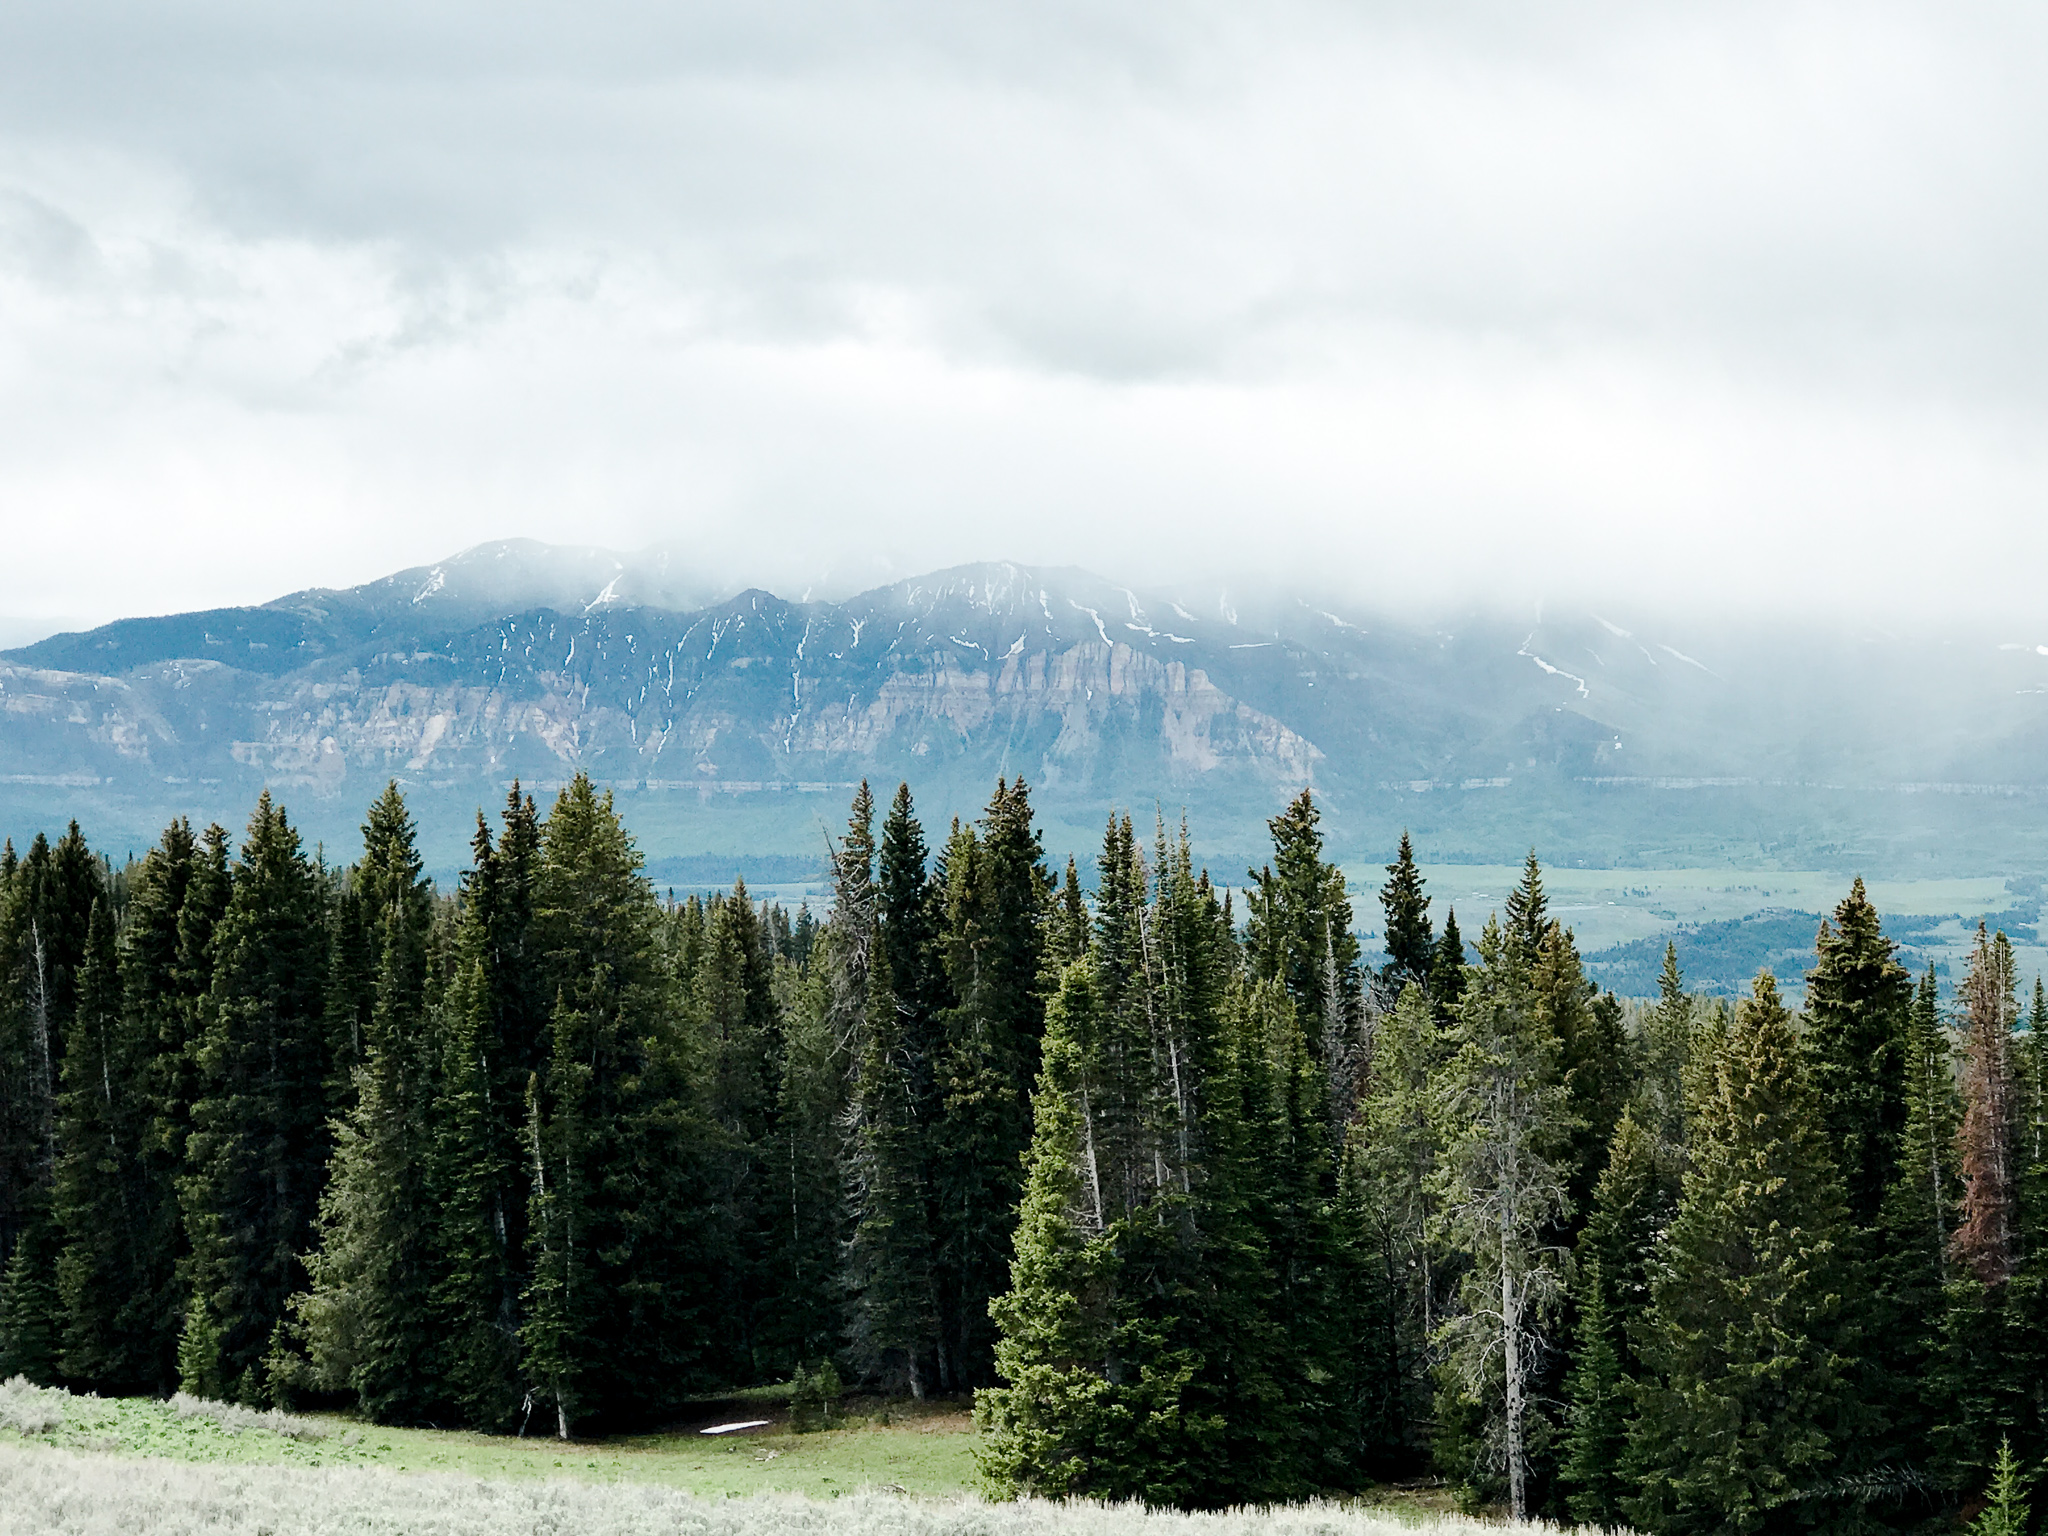 Mountains in clouds over the Beartooth Highway in Montana and Wyoming